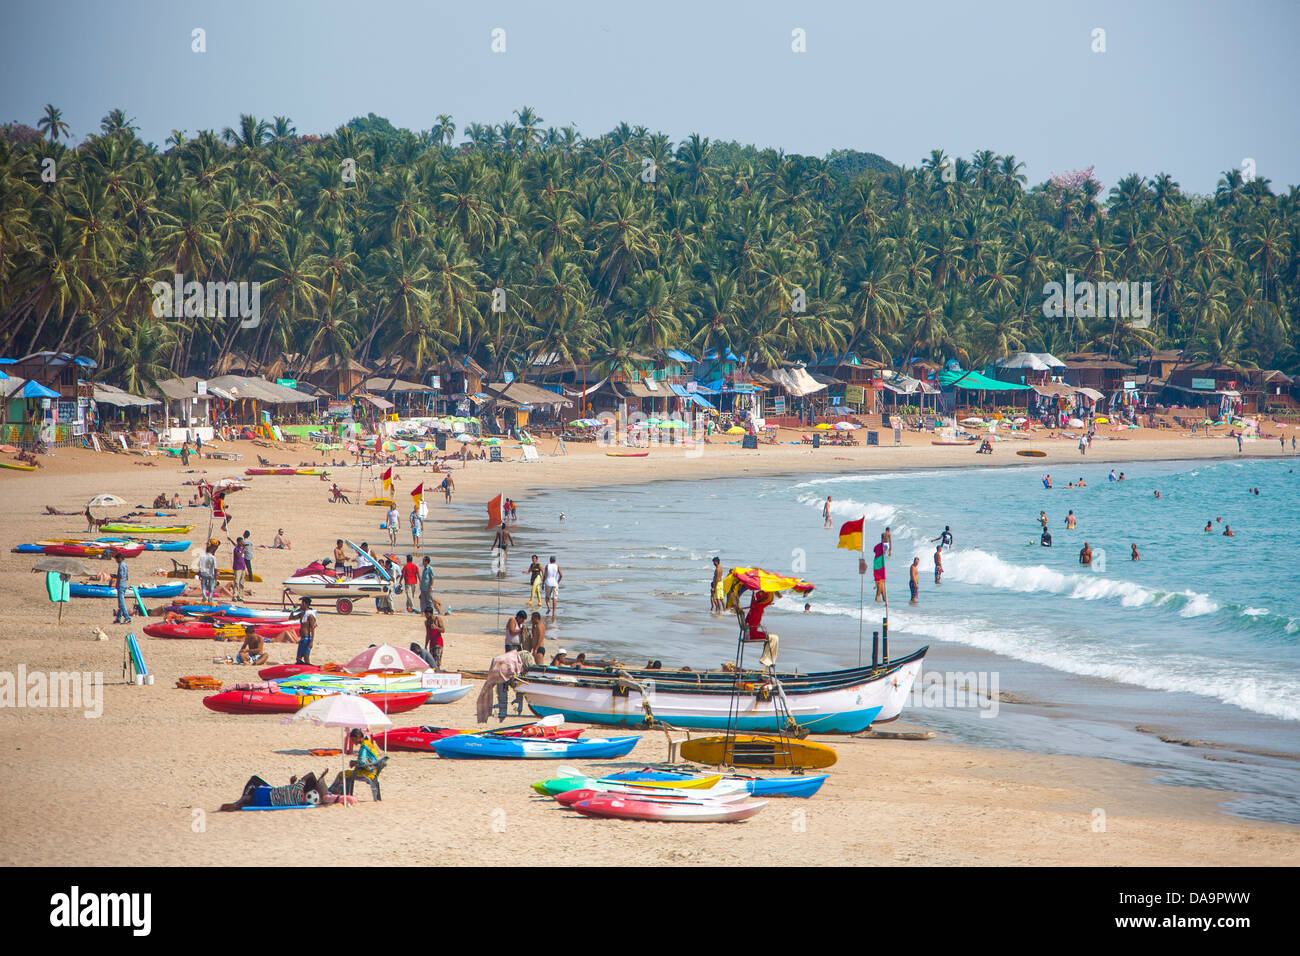 Goa Beach Colourful High Resolution Stock Photography And Images Alamy